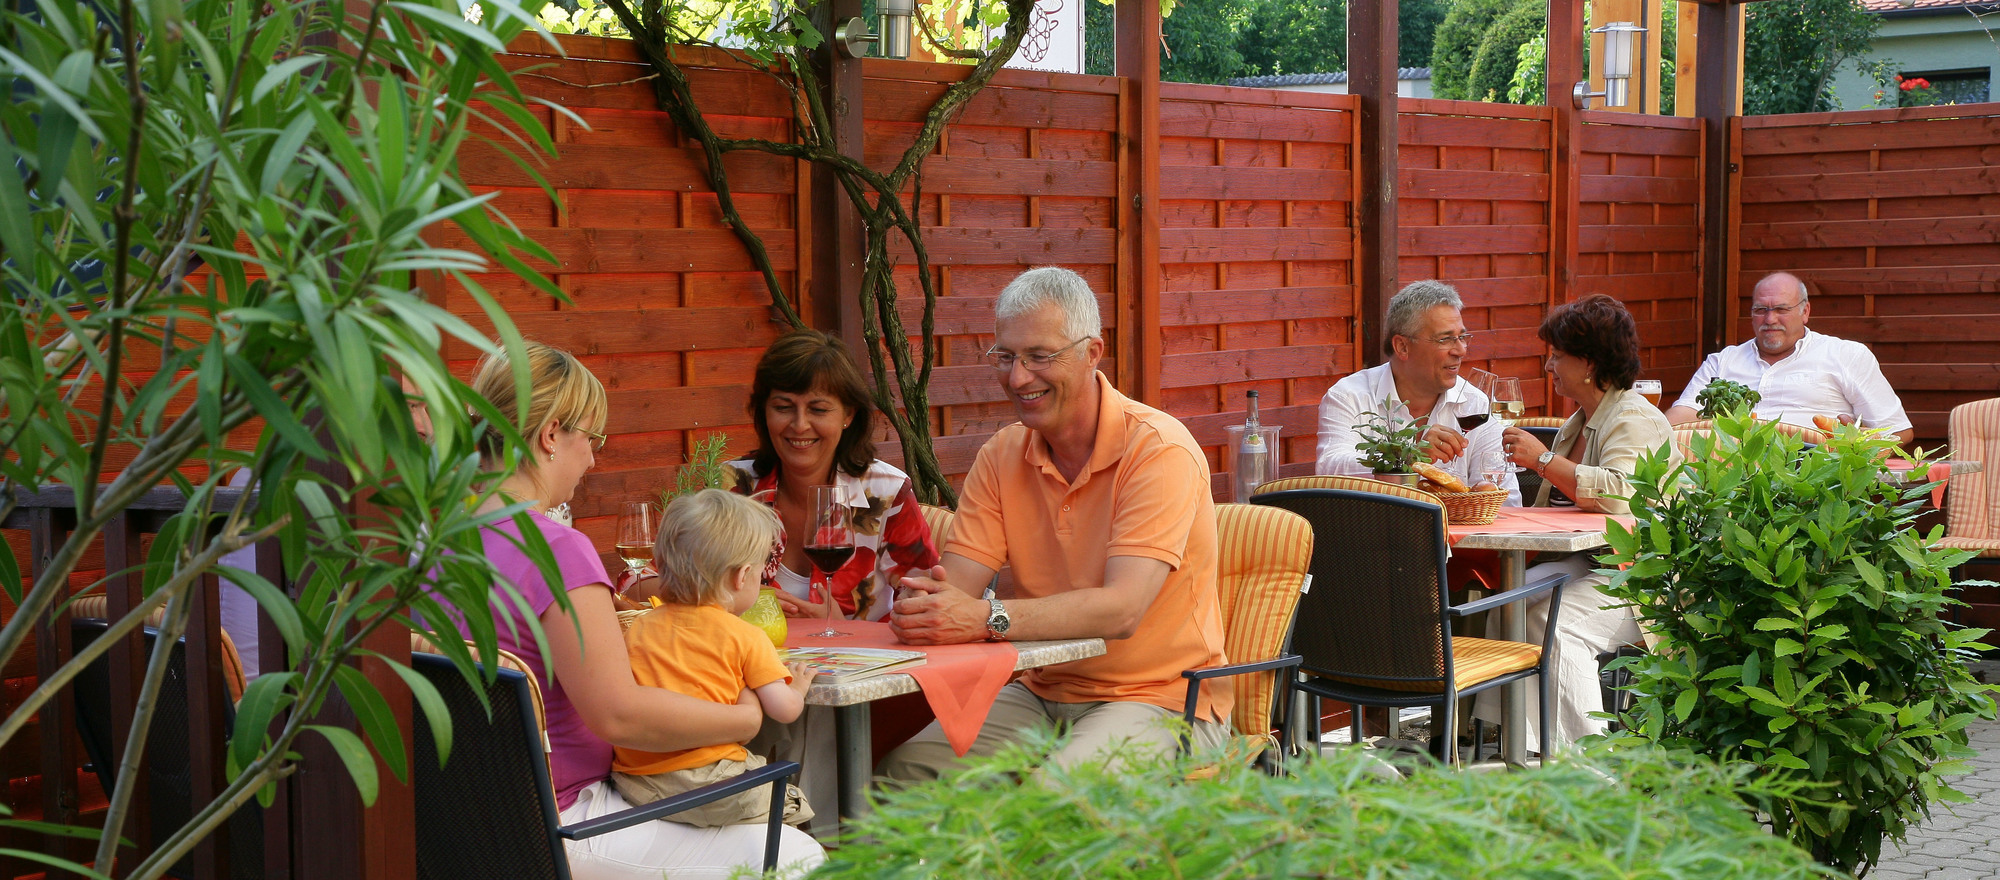 Cozy garden terrace in the 3-star-superior hotel Ringhotel Reubel in Nuremberg-Zirndorf